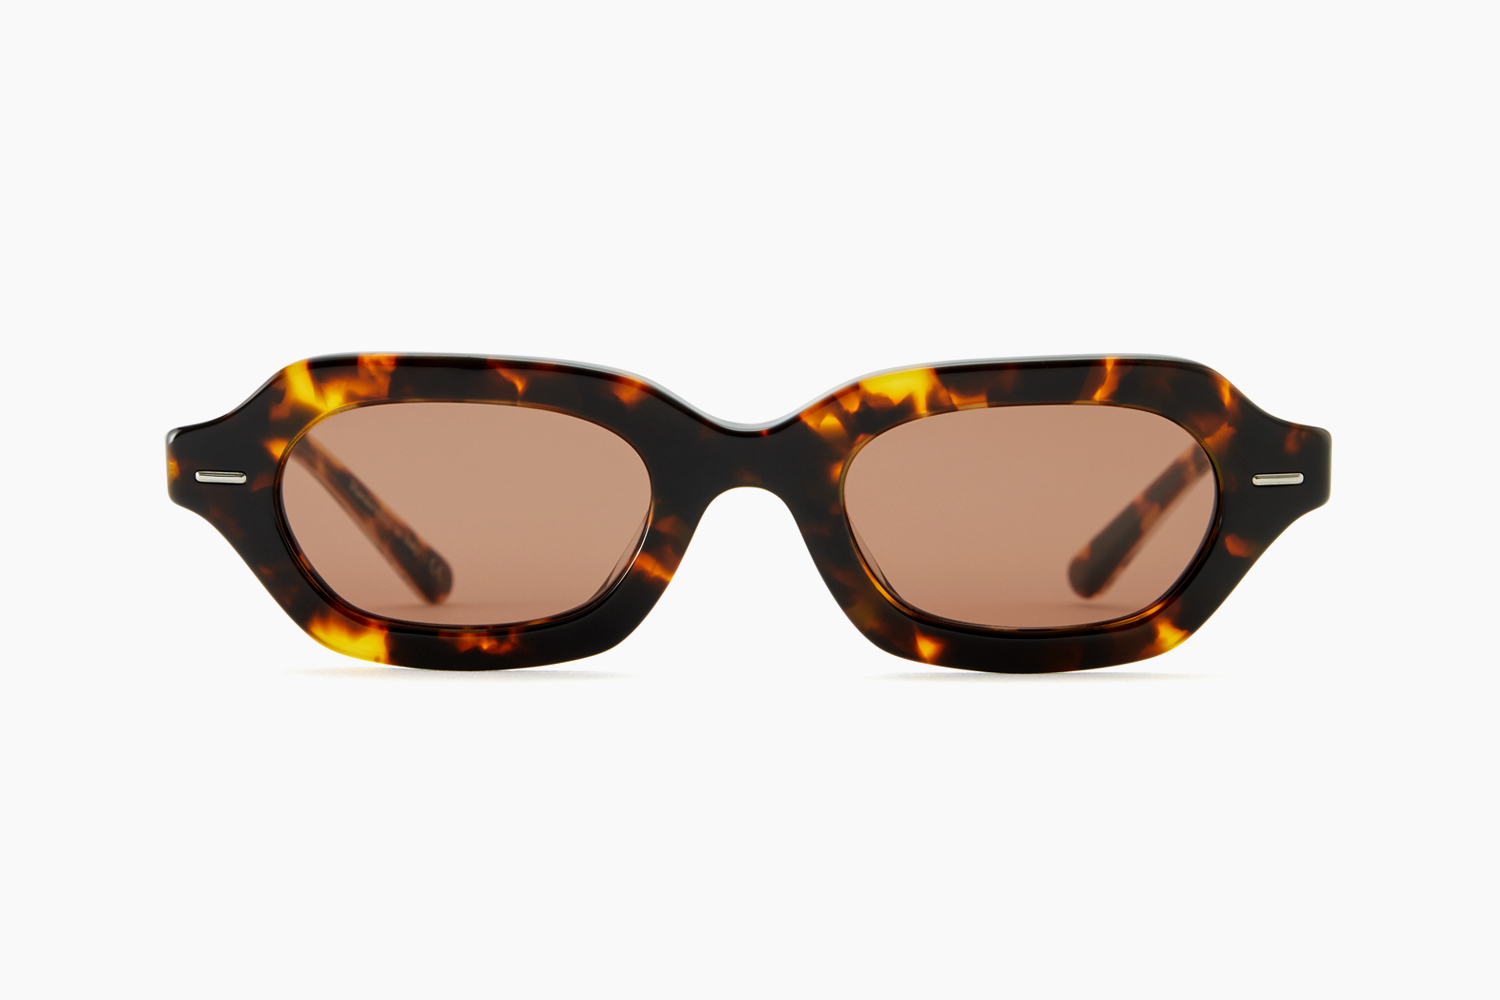 L.A. CC – 1663C5|OLIVER PEOPLES